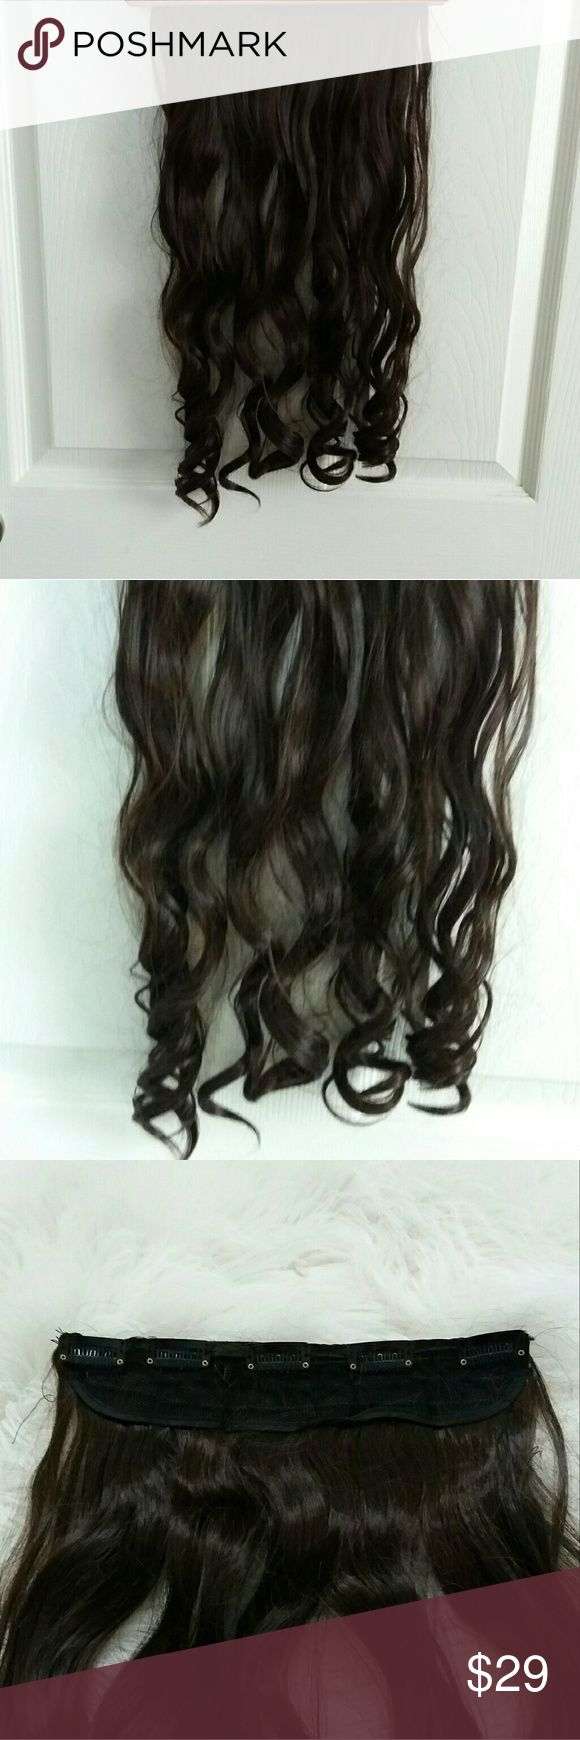 """Synthetic Hair Clip Extensions NEW...... NEVER USED, Long, curly, wavy synthetic hair extensions, dark brown, 20"""" Accessories Hair Accessories"""